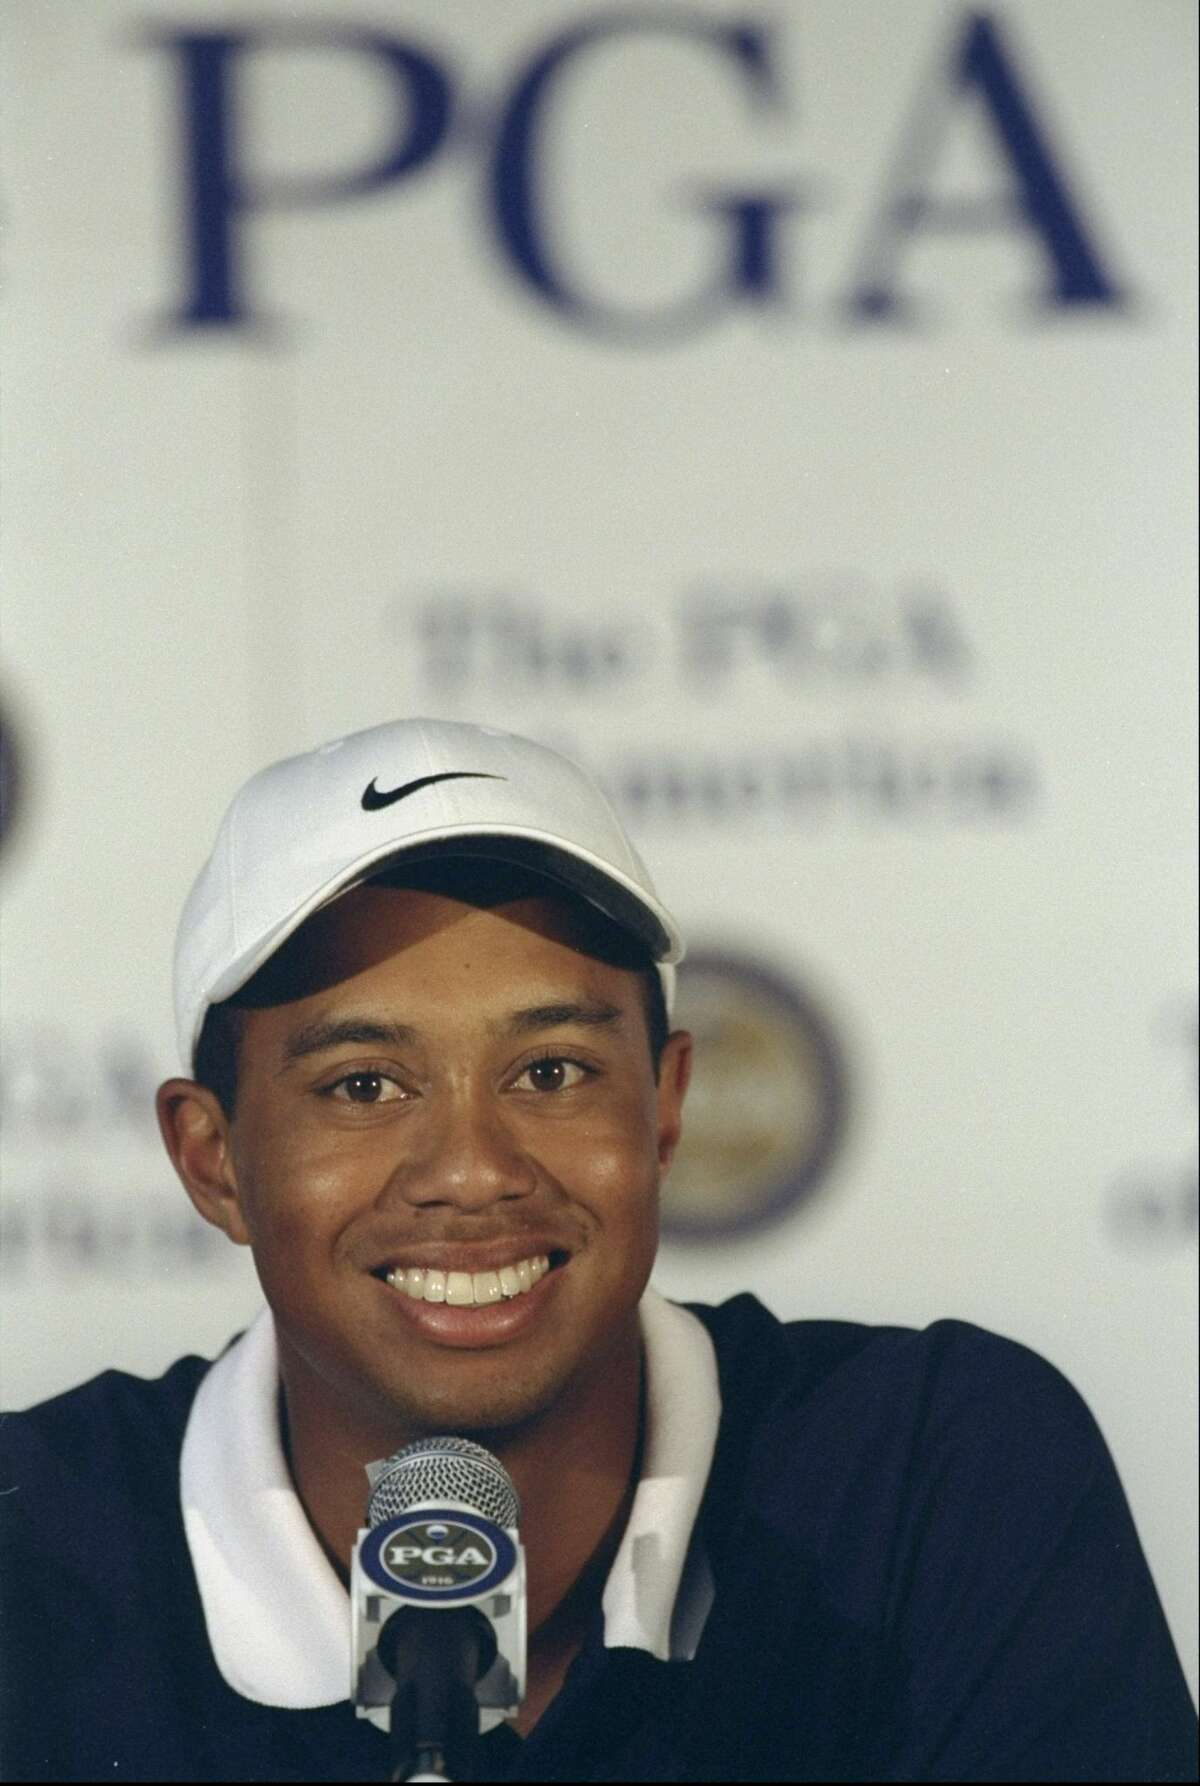 Tiger Woods talks to the press in 1998.